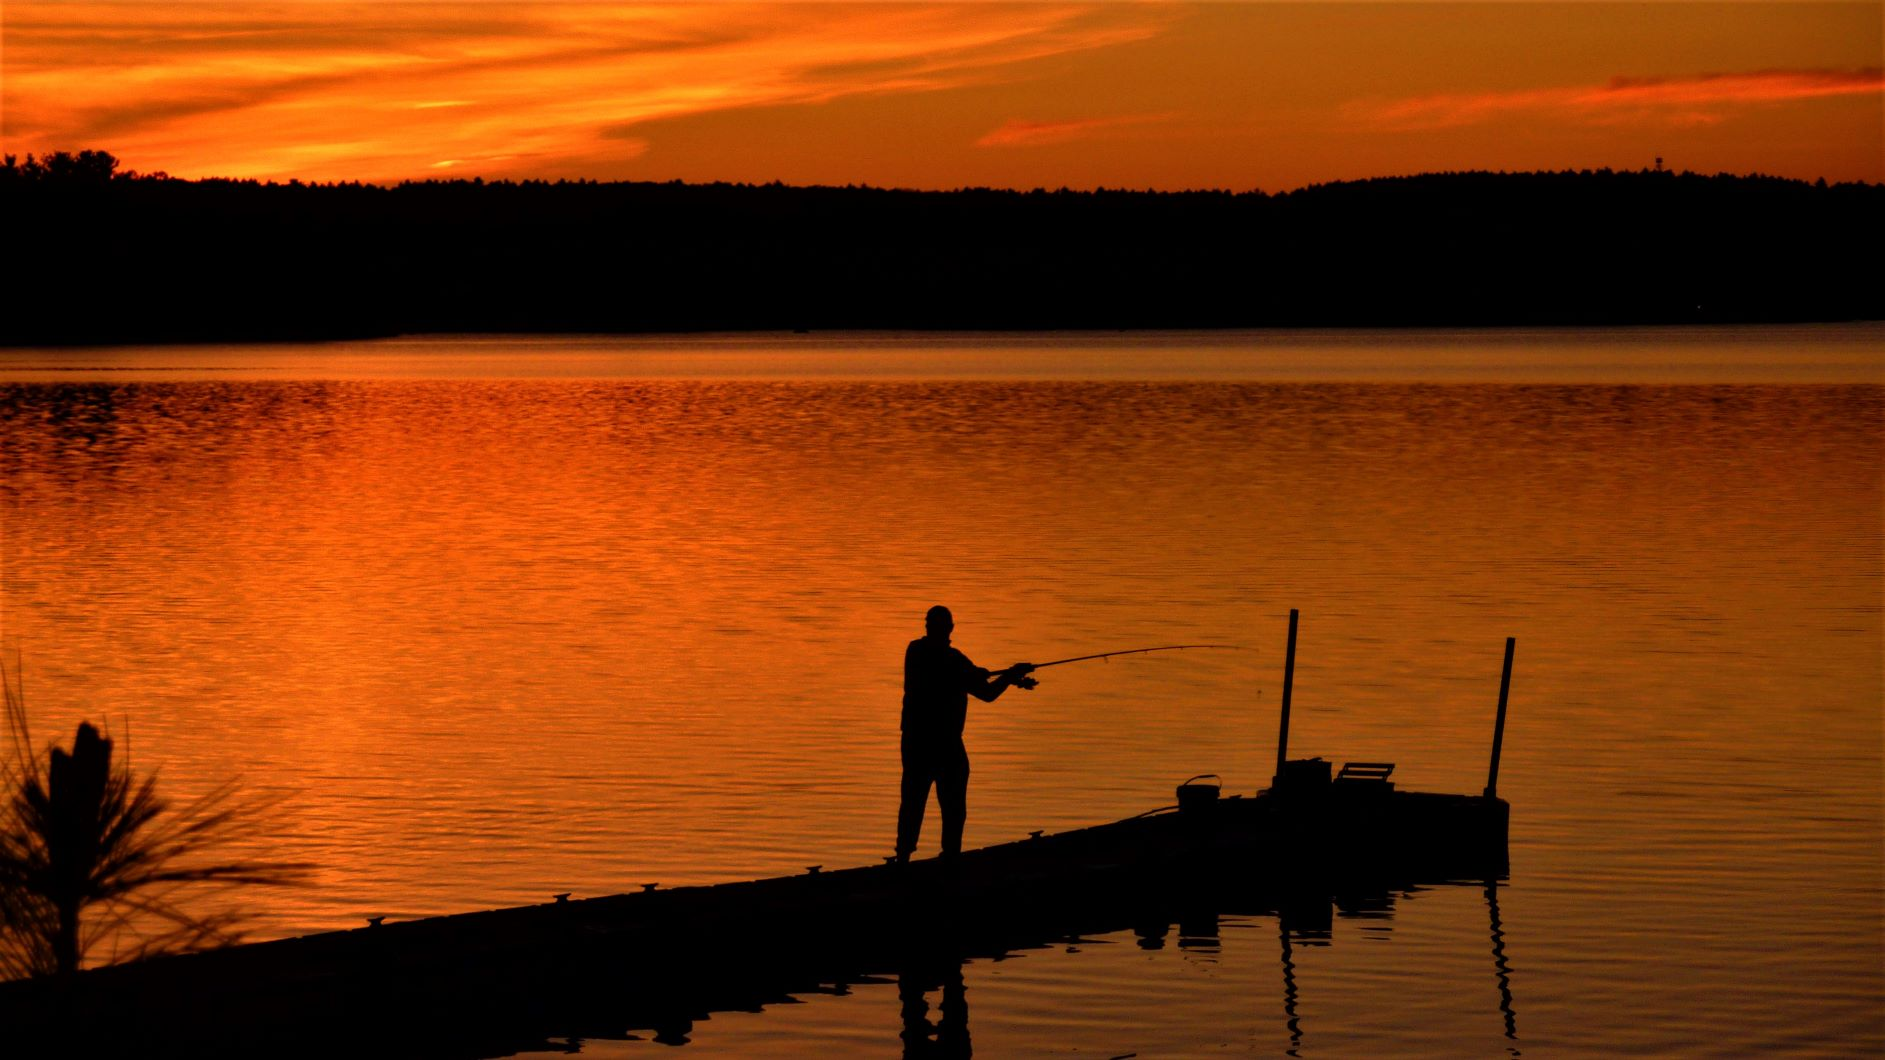 Mighty fine fishing and sunset while practicing social distancing at Lake Massapoag in Sharon, Massachusetts.